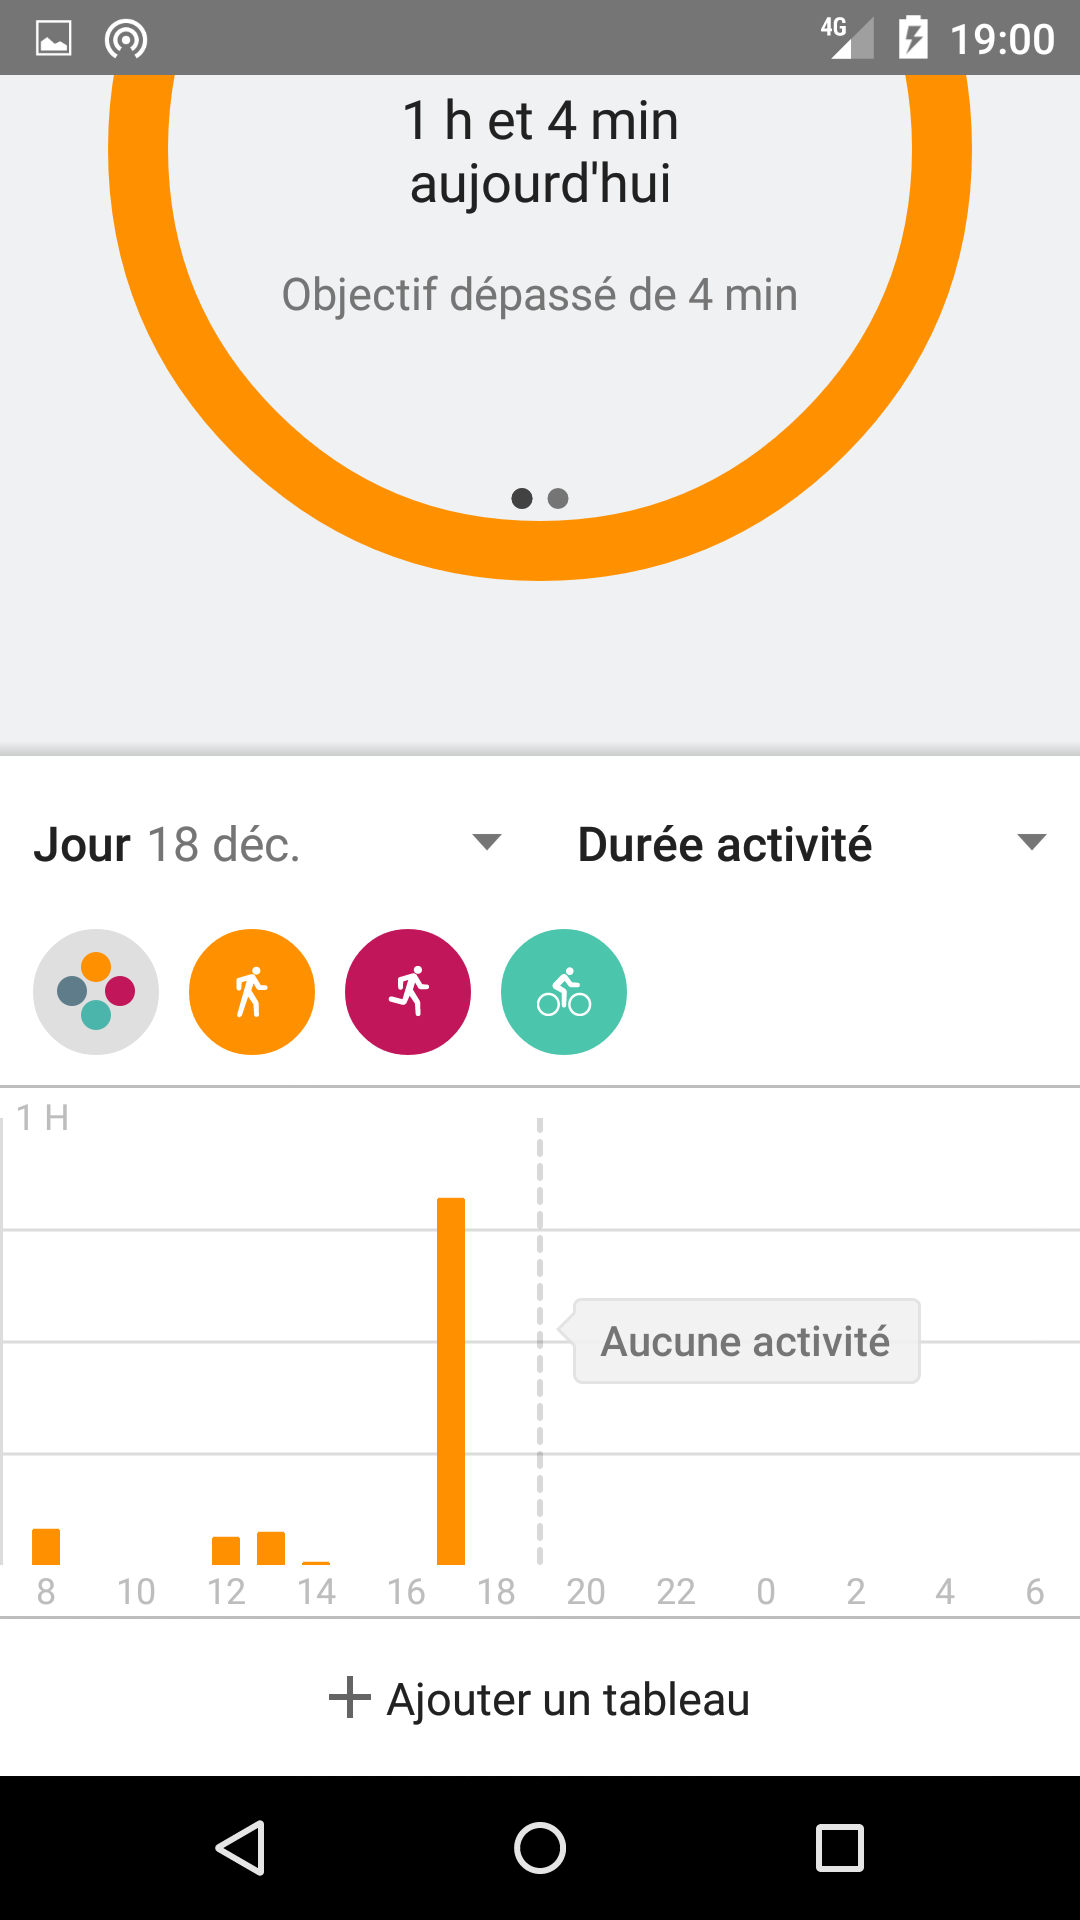 Screenshot 2014 12 18 19 00 56 - Android - Une semaine avec Google Fit